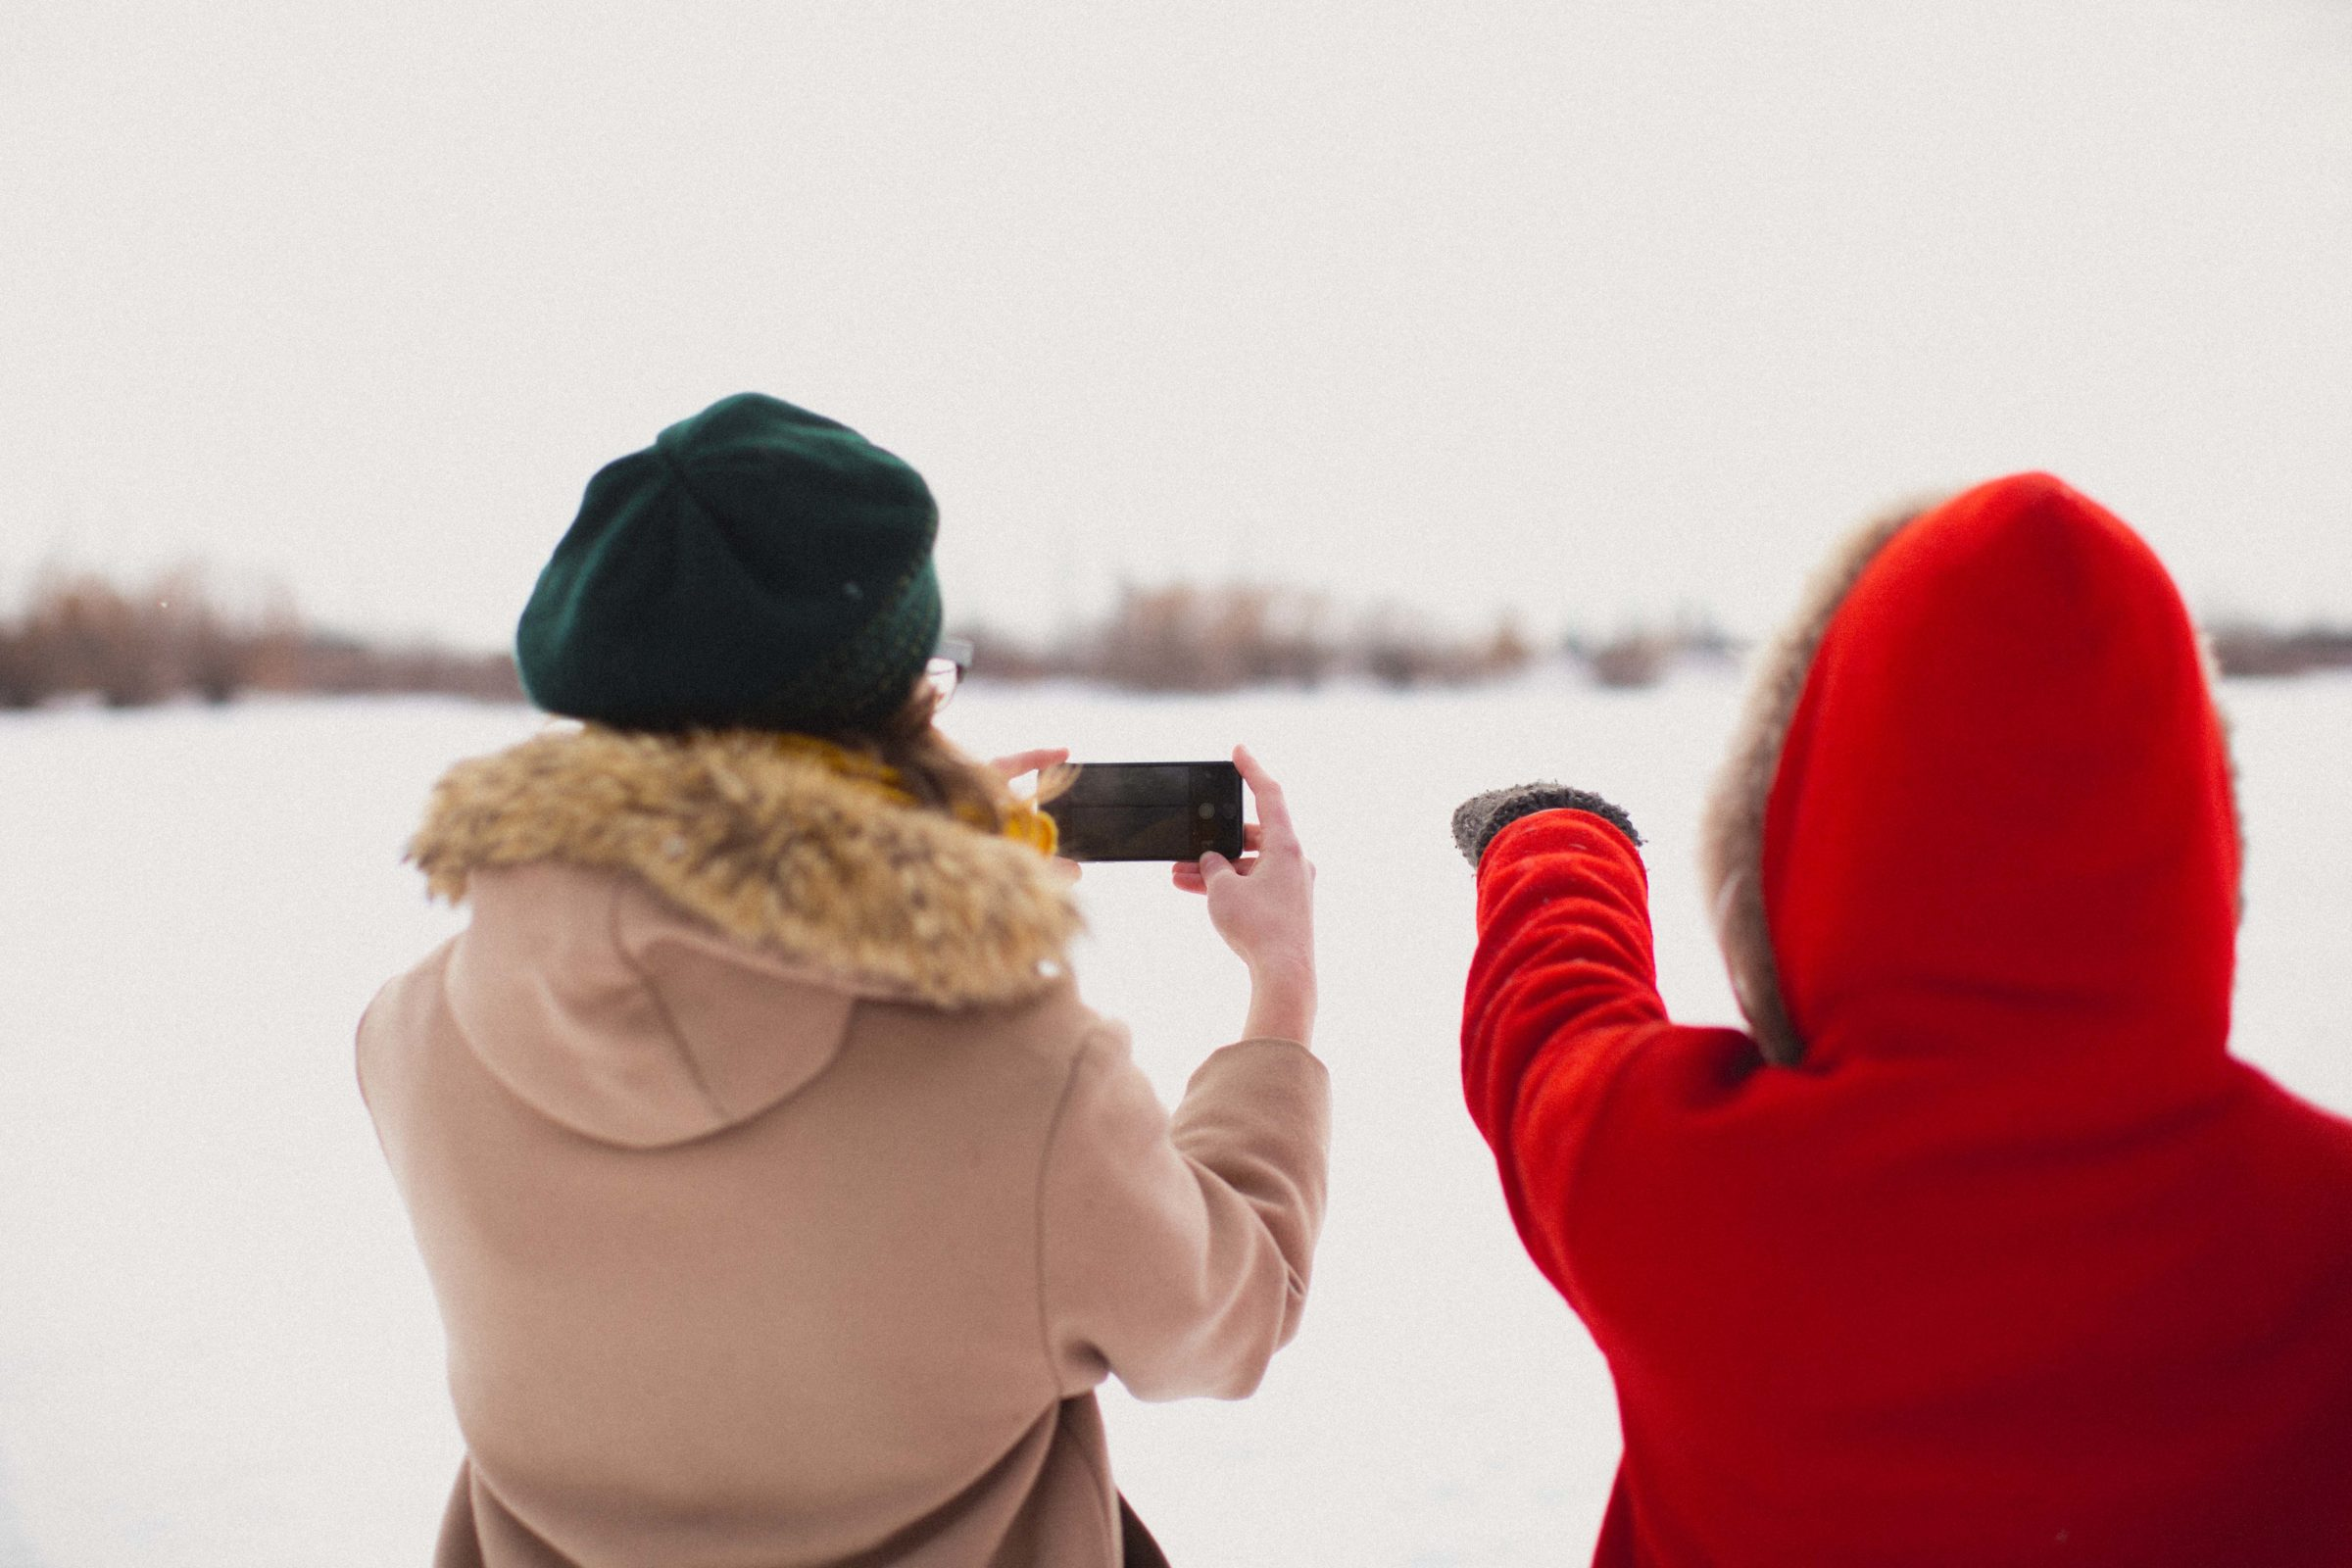 Two adults look out into an open snowy field, one holding their phone to take a picture while the other points out at something.